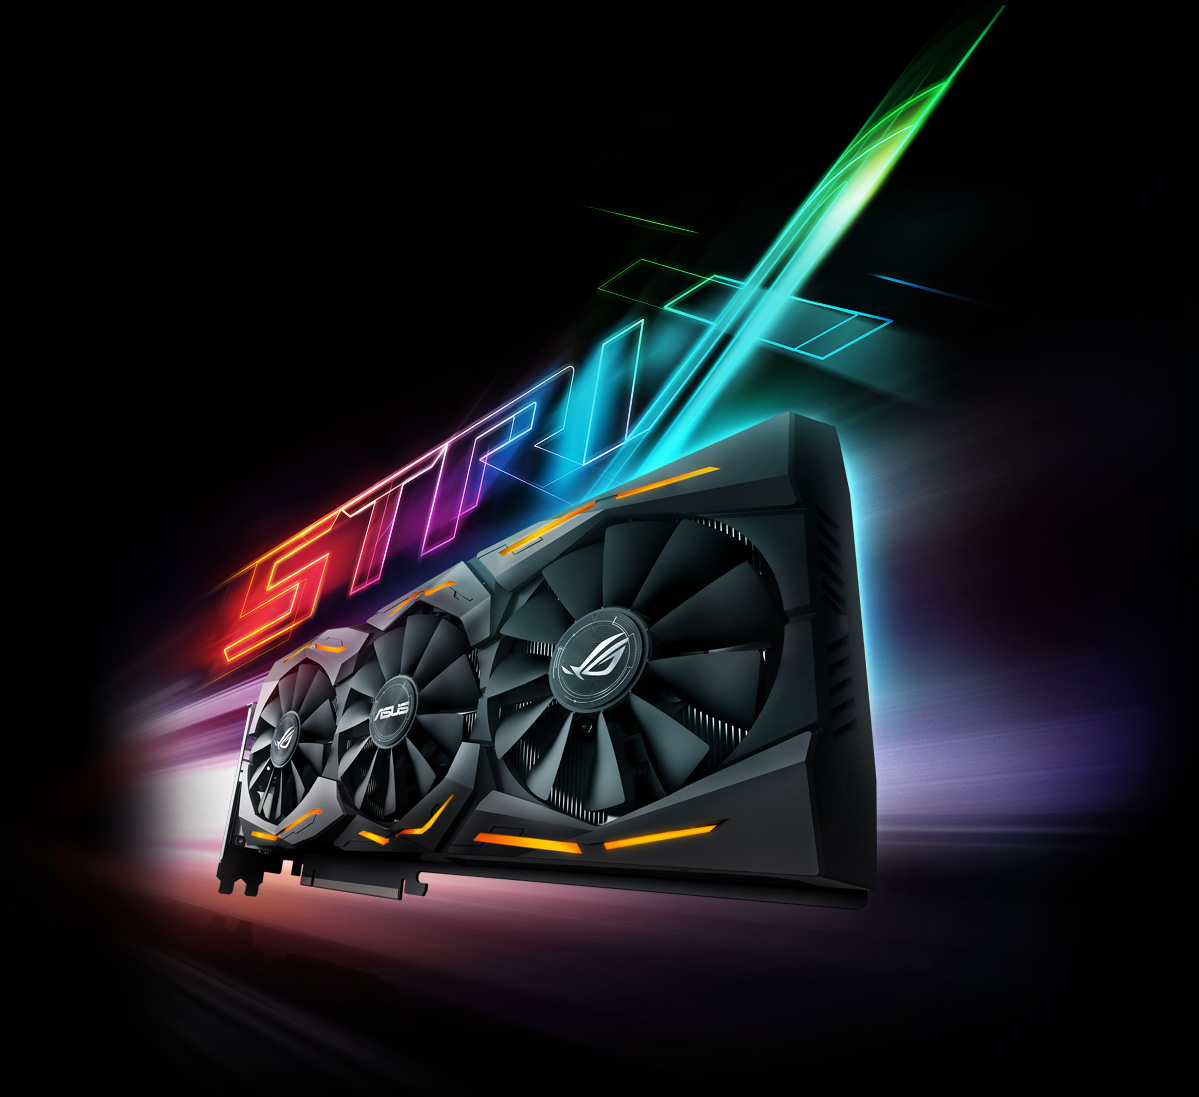 https://www.asus.com/us/ROG-Republic-Of-Gamers/ROG-STRIX-GTX1060-O6G-GAMING/websites/global/products/J5YWnEg6d76aHVYY/img/intro-hero.jpg